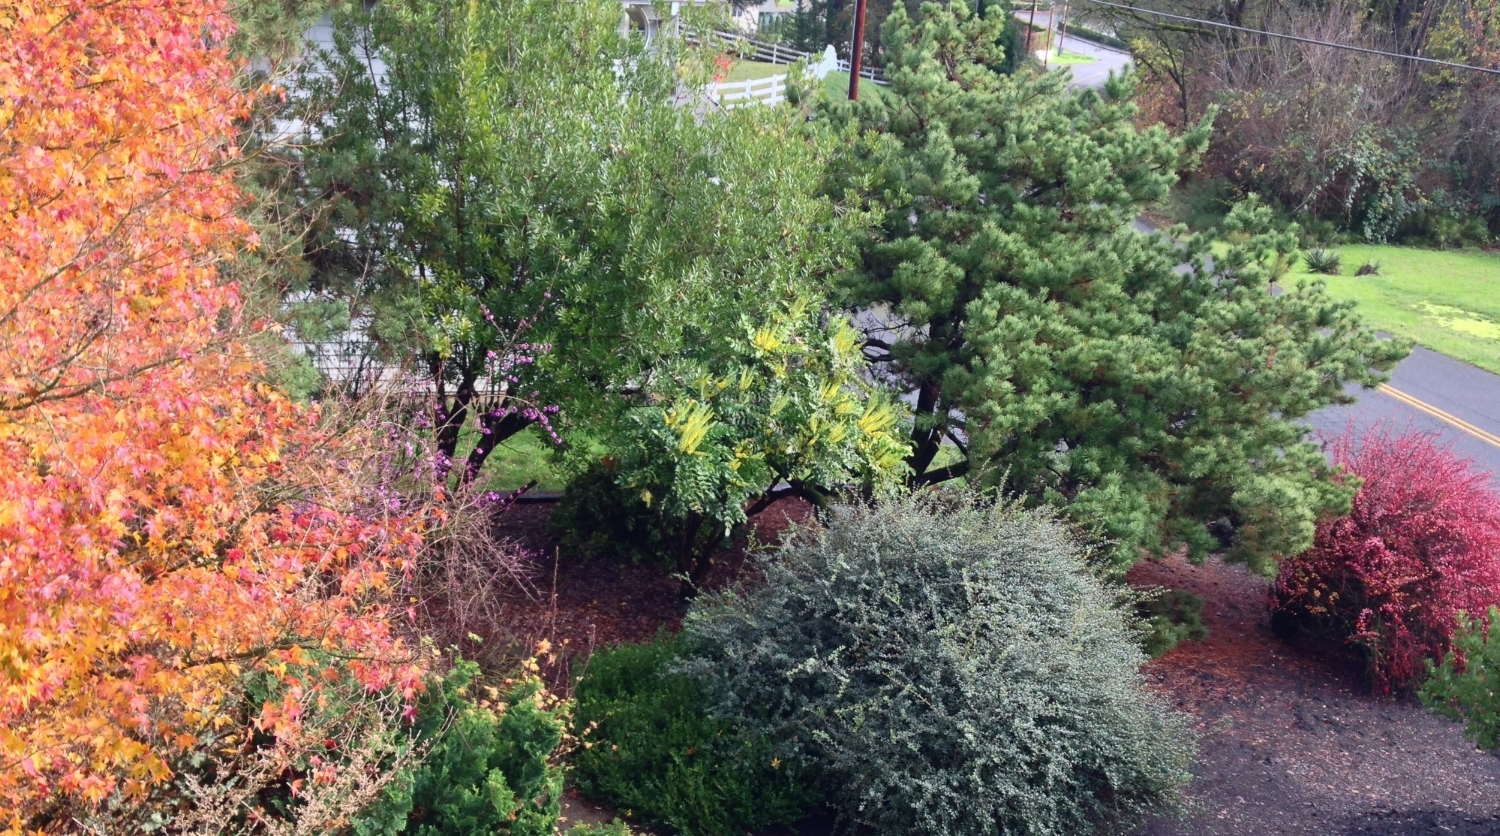 The  southeast corner of our yard ,from a 2nd story bedroom. Left to right: orange Japanese Maple fall color;purple berries of  Callicarpa  (Beautyberry);Pacific Wax Myrtle; Mahonia  'Arthur Menzies';bluish leaves of  Osmanthus delavayii ; Pinus contorta  (Shore Pine);and red fall color of Berberis thunbergii 'Rose Glow,' the last barberry left in my yard. My story today begins with the pine.